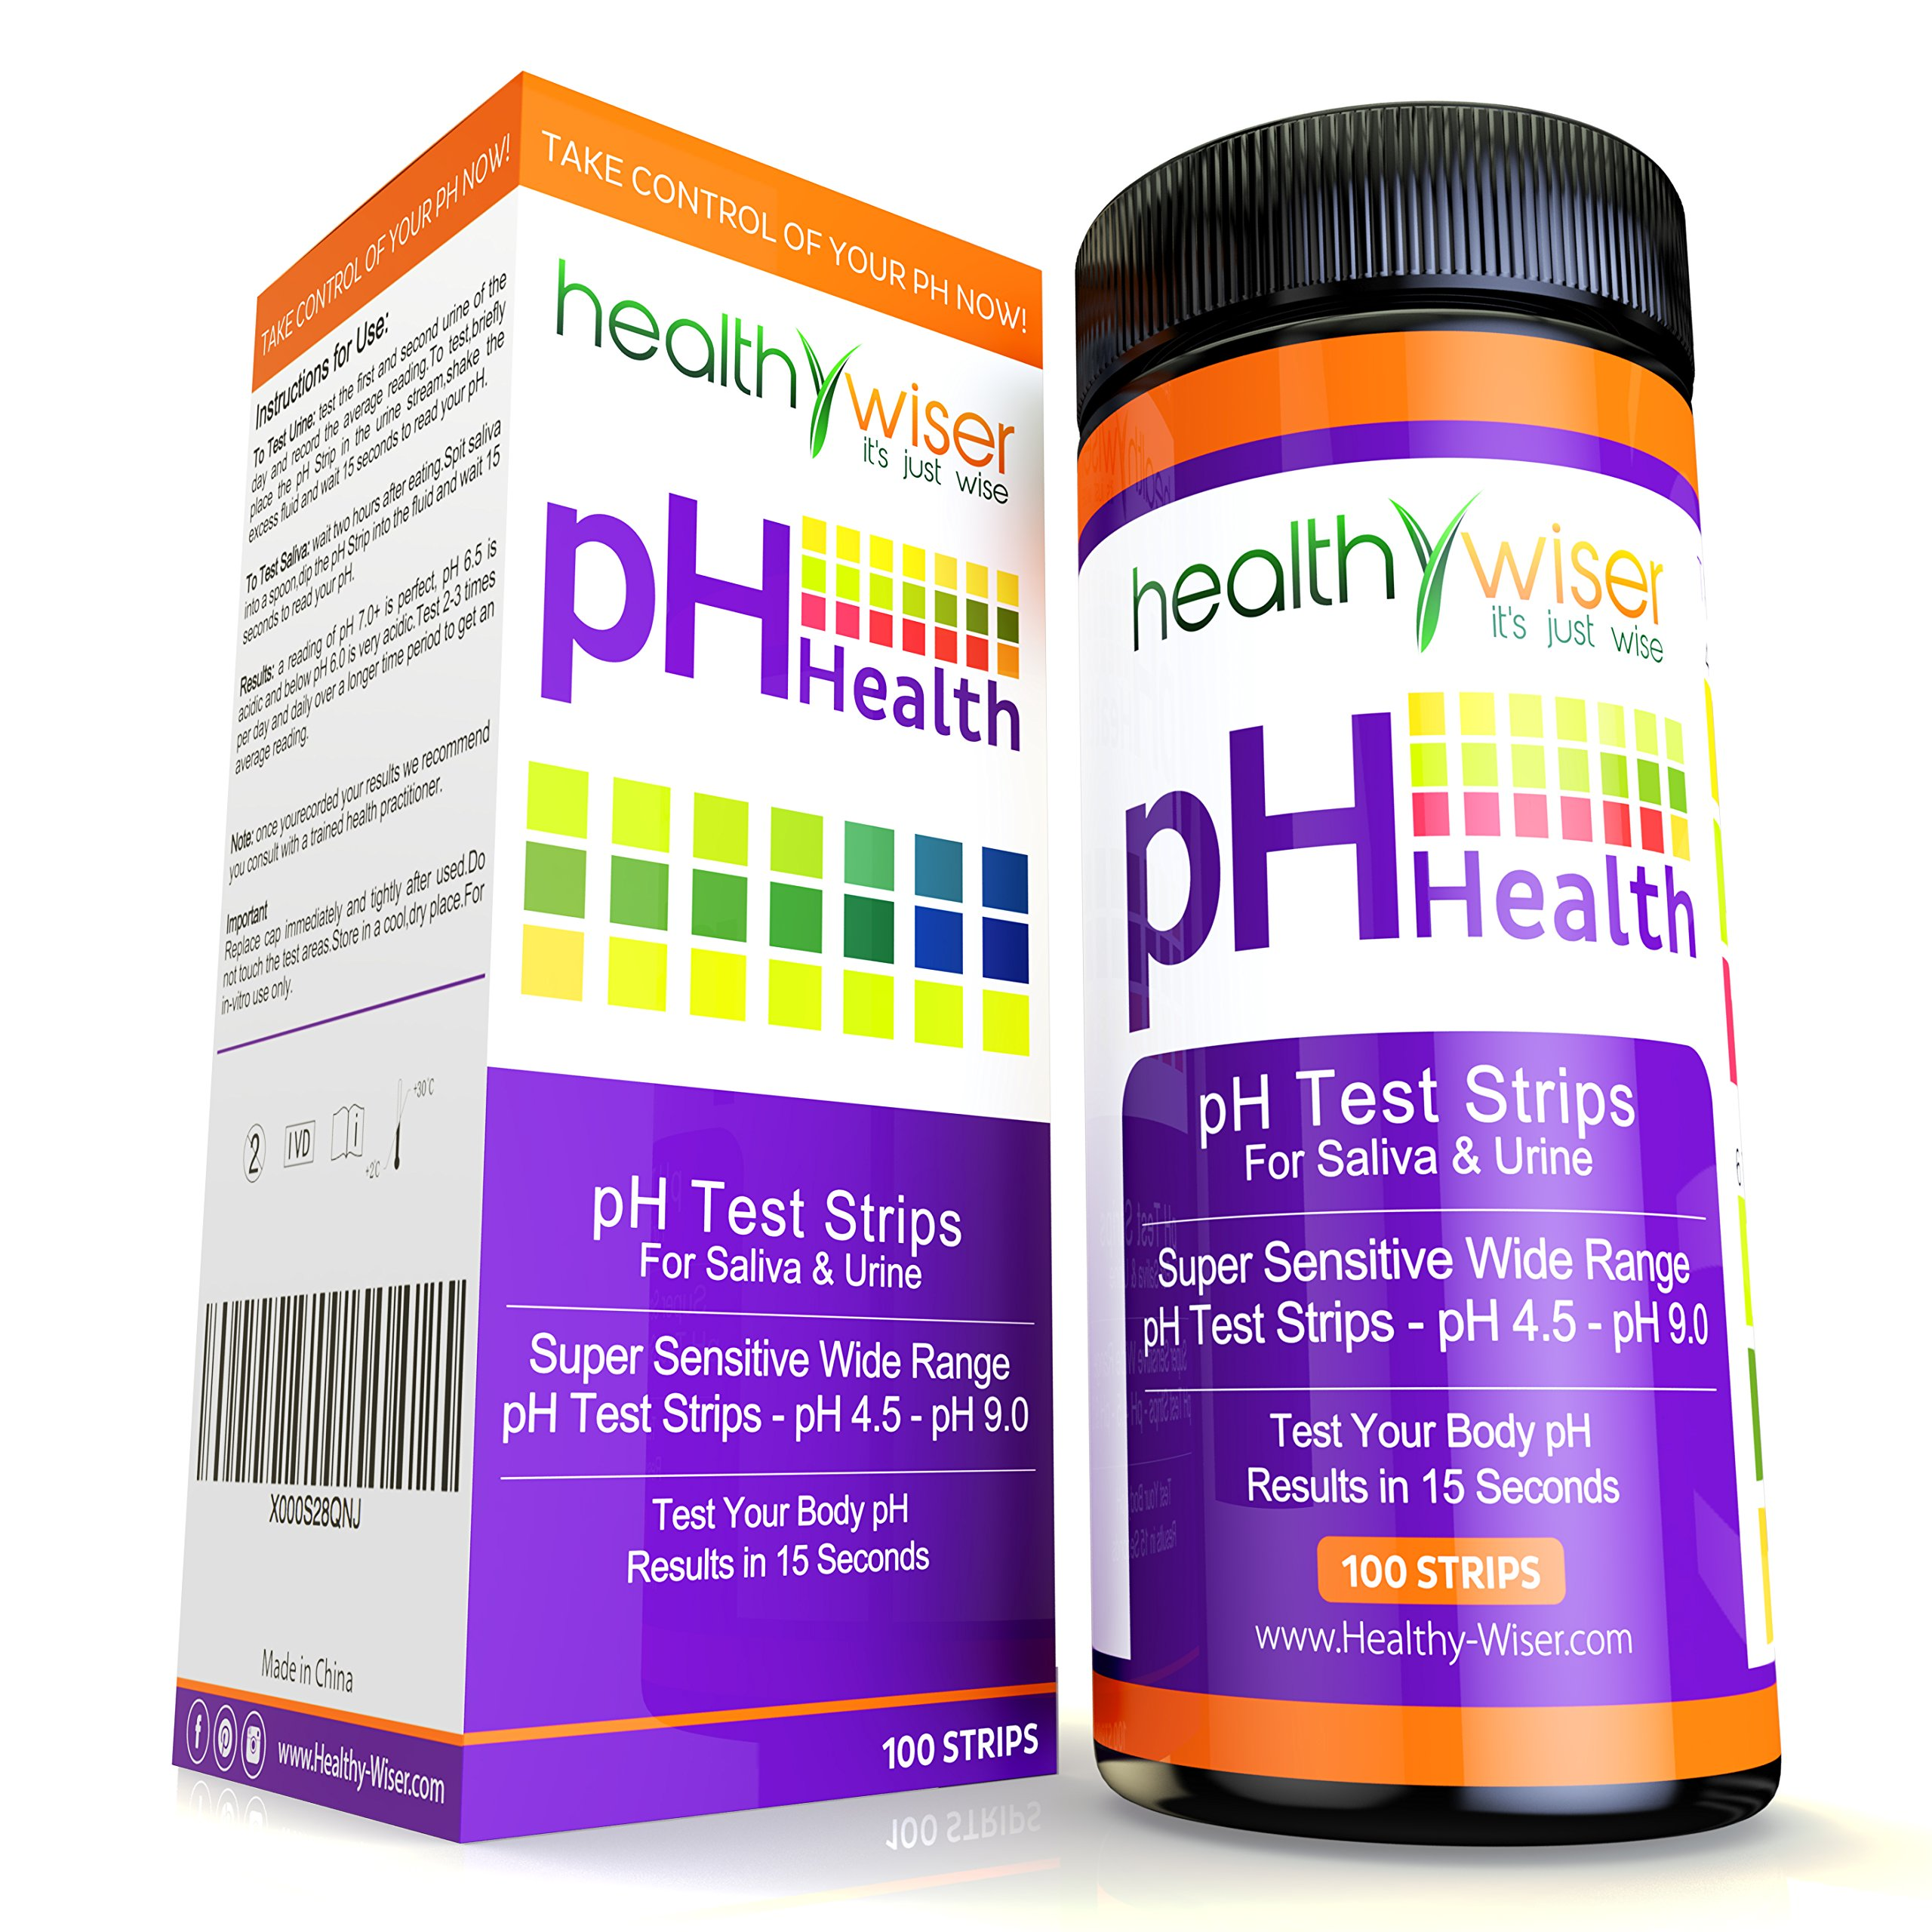 pH Test Strips Tests Body pH Levels for Alkaline & Acid levels Using Saliva and Urine. Track and Monitor Your pH Balance & A Healthy Diet, Get Accurate Results in Seconds 100ct pH Scale 4.5-9